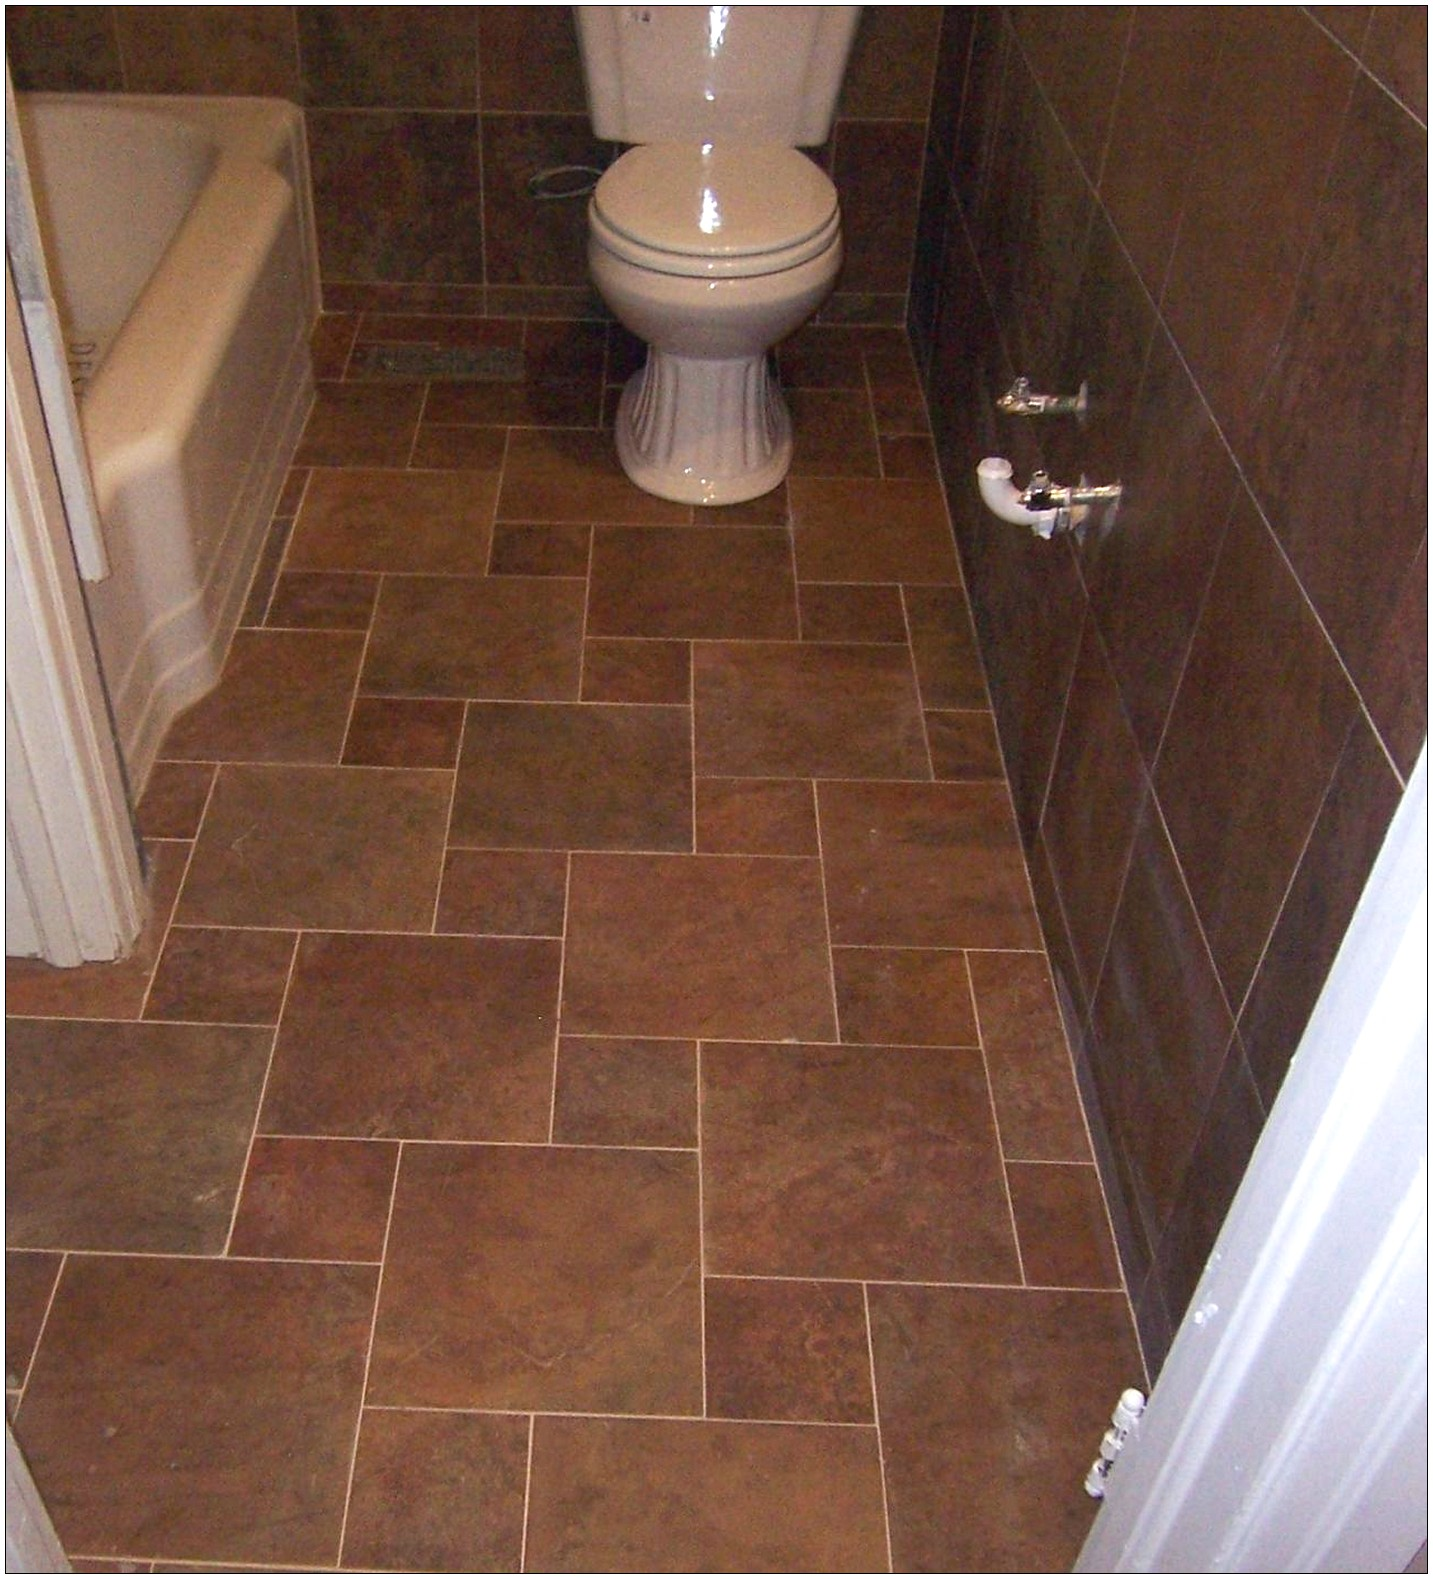 Floor Tile Design Ideas For Small Bathrooms ~ Wonderful ideas and pictures of decorative bathroom